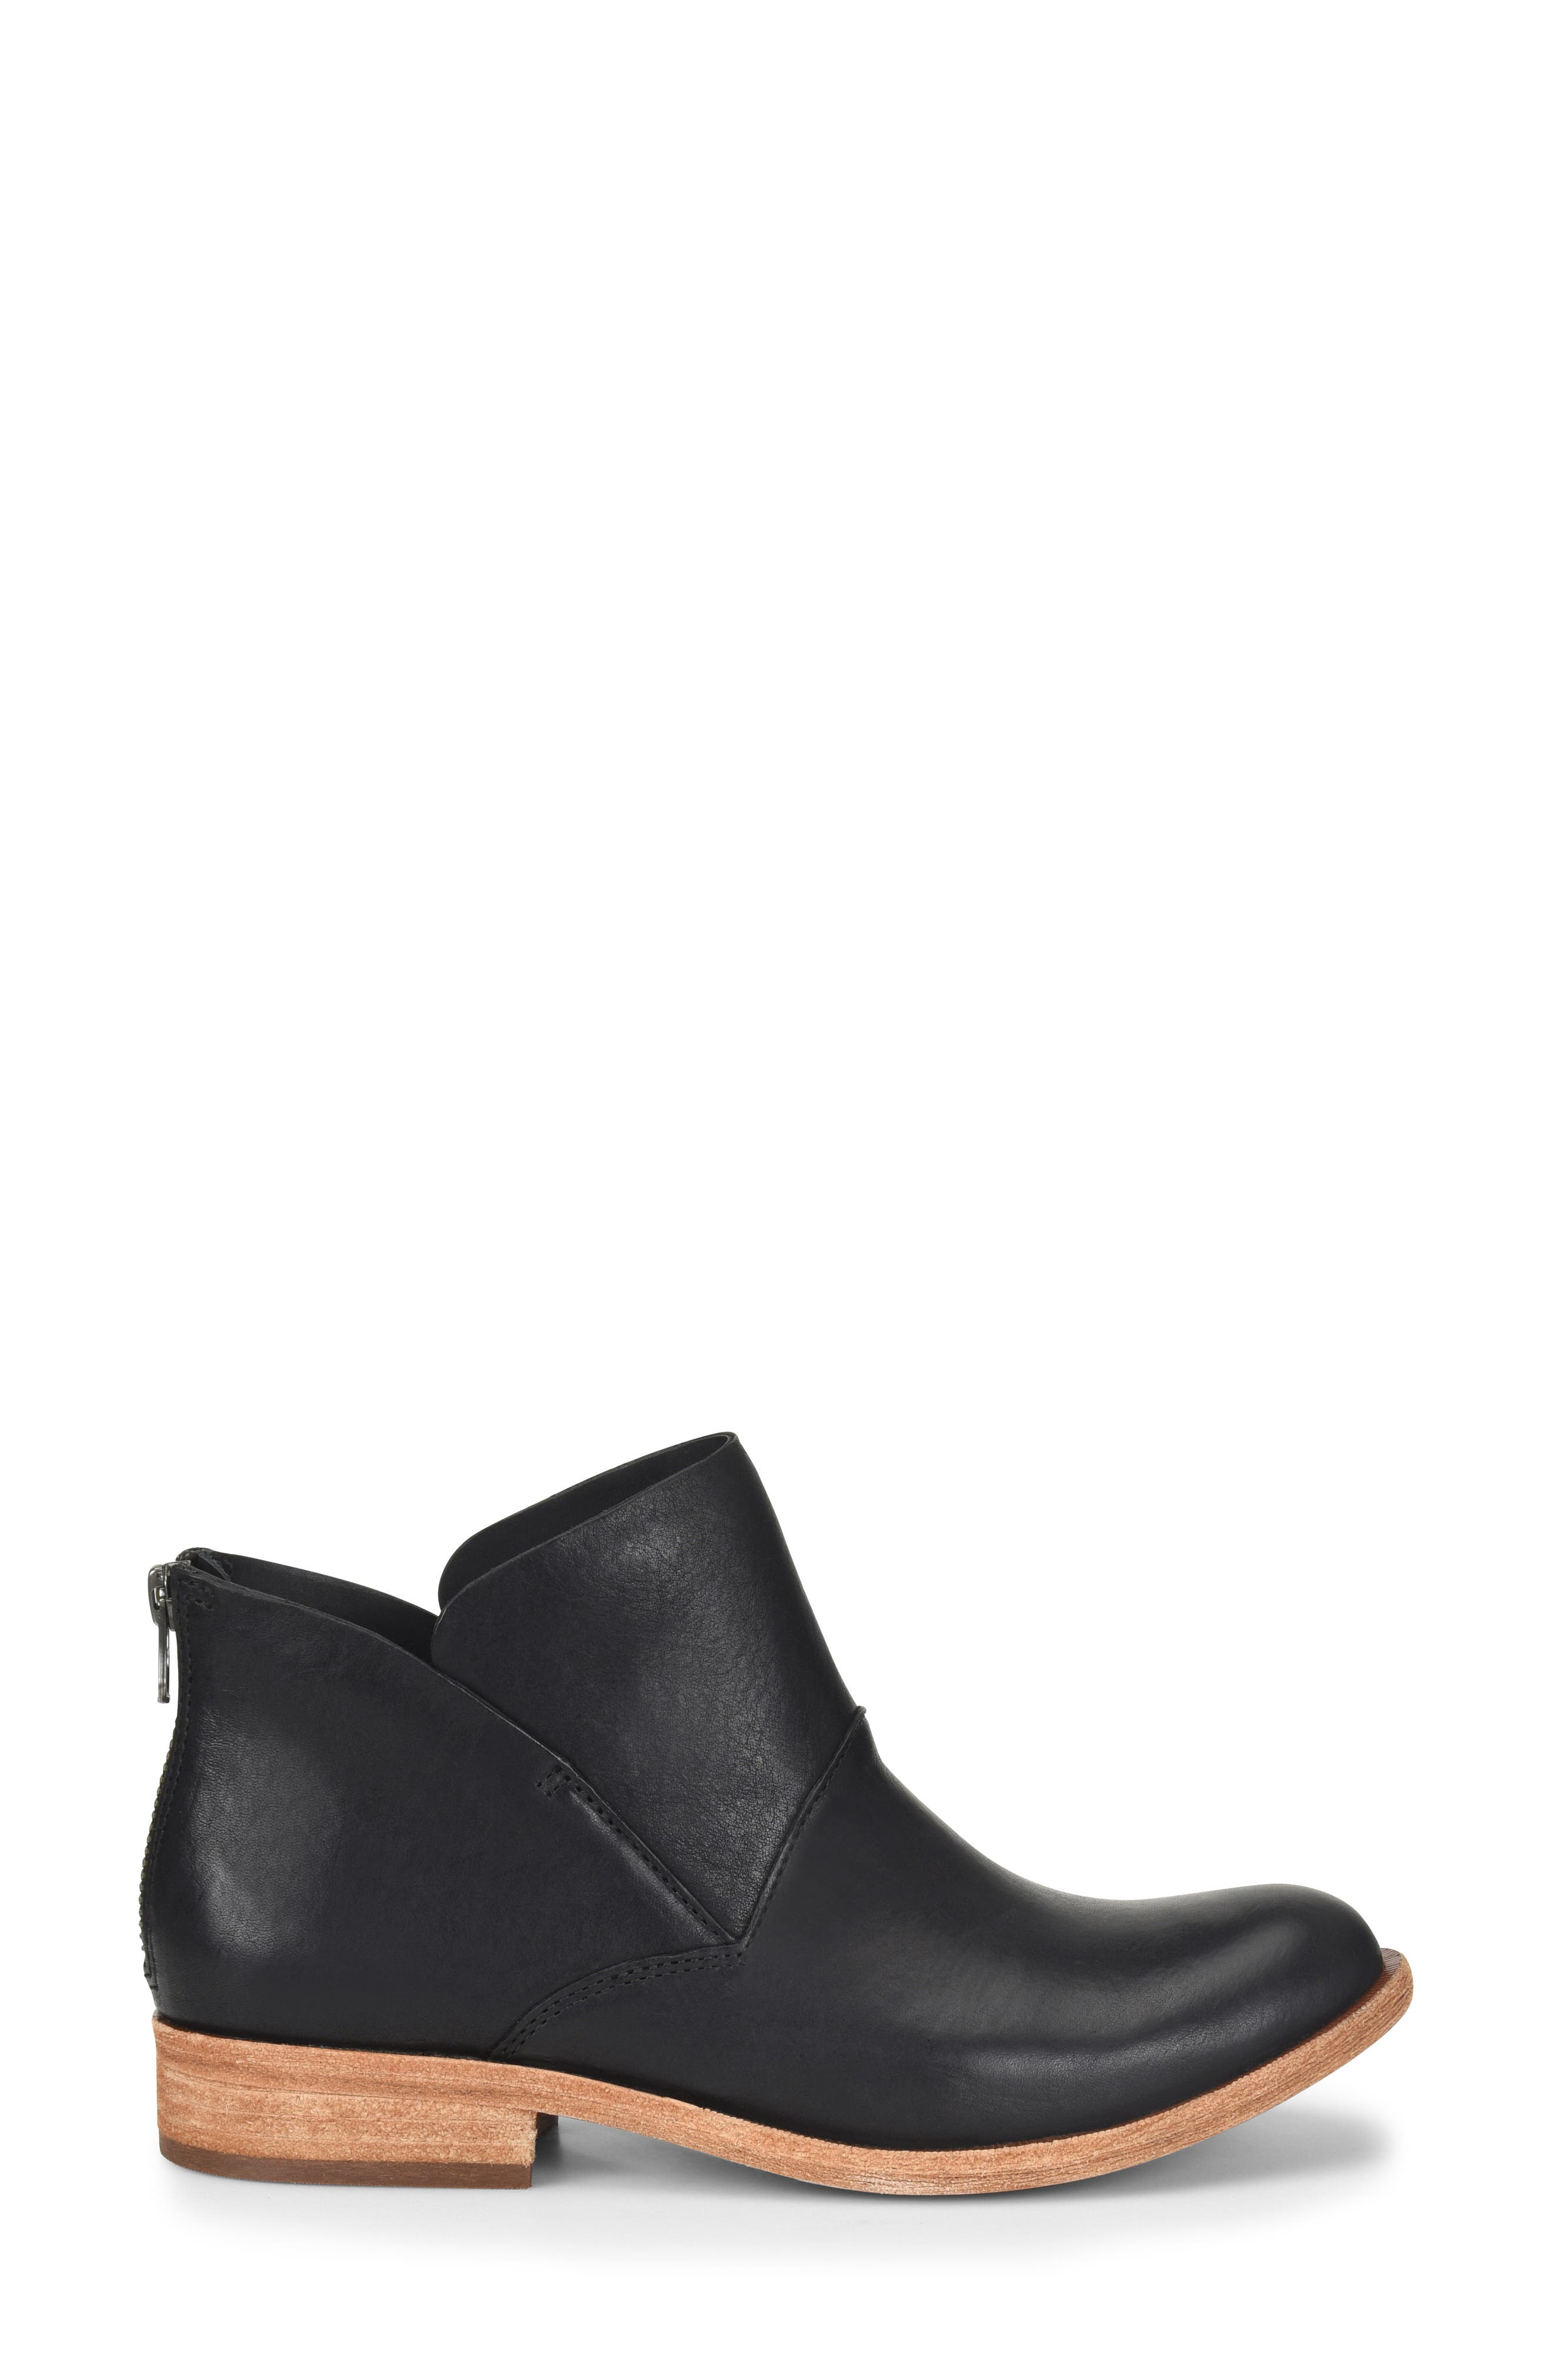 Ryder Ankle Boot,                             Alternate thumbnail 3, color,                             BLACK LEATHER